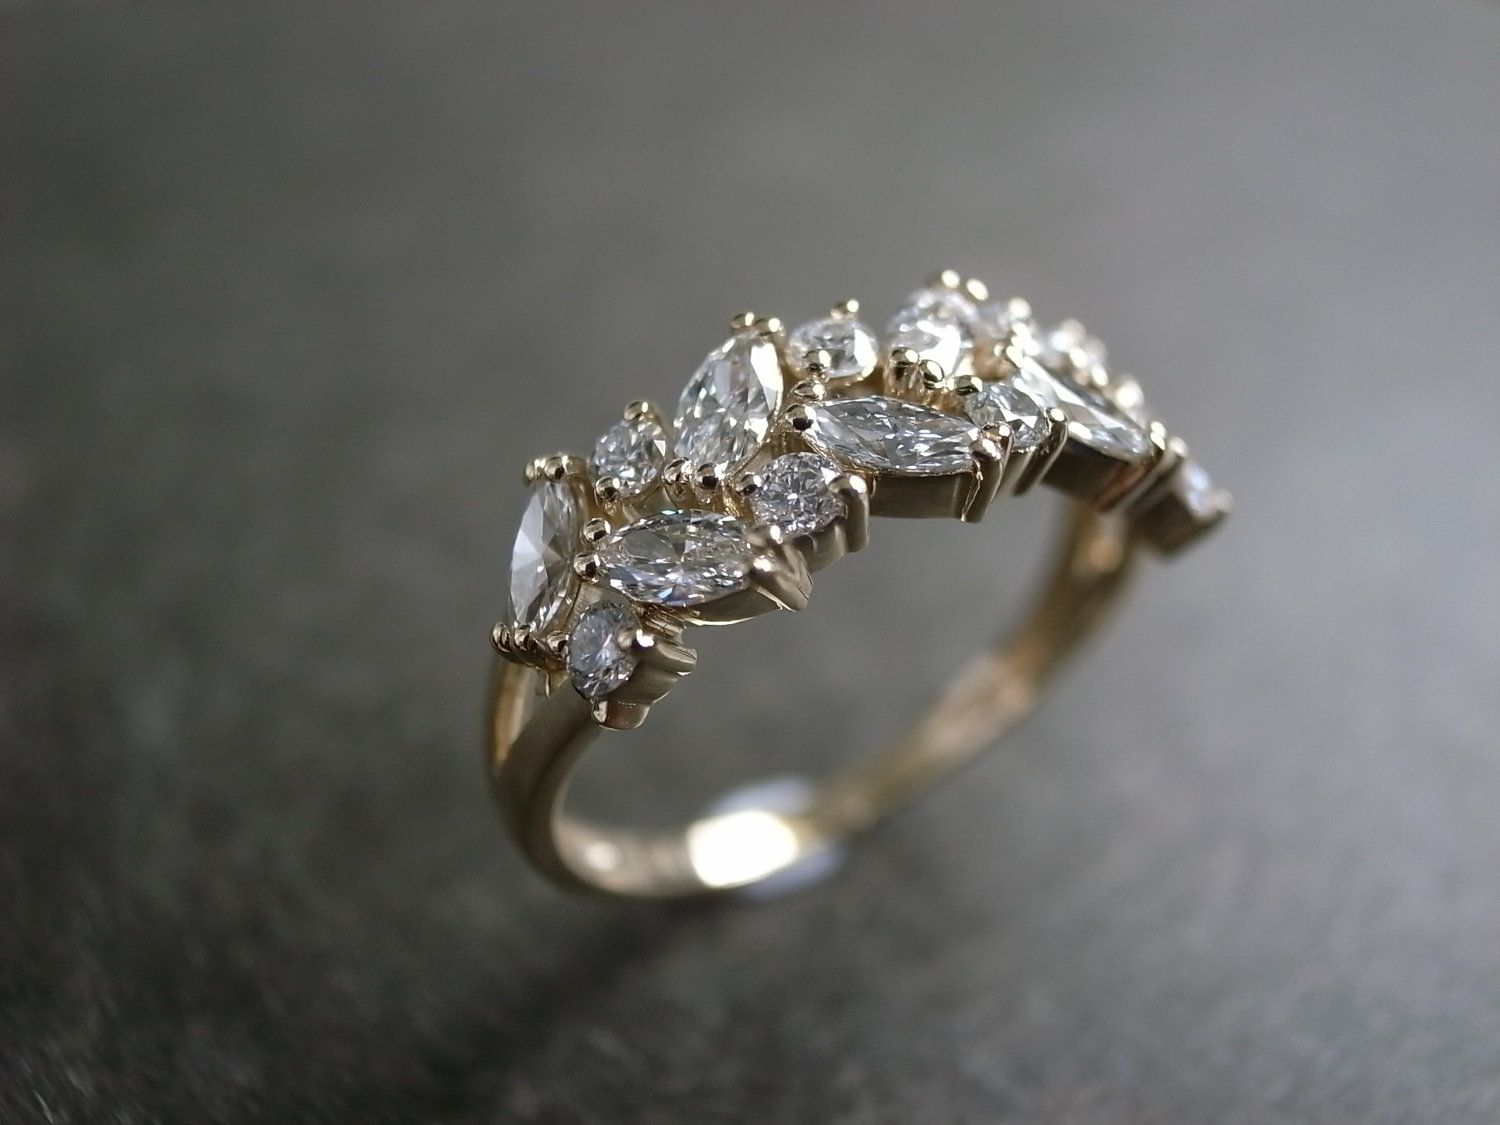 marquise wedding rings marquee wedding ring Marquise Diamond Wedding Ring via Etsy Flat engagement ring ring won t spin